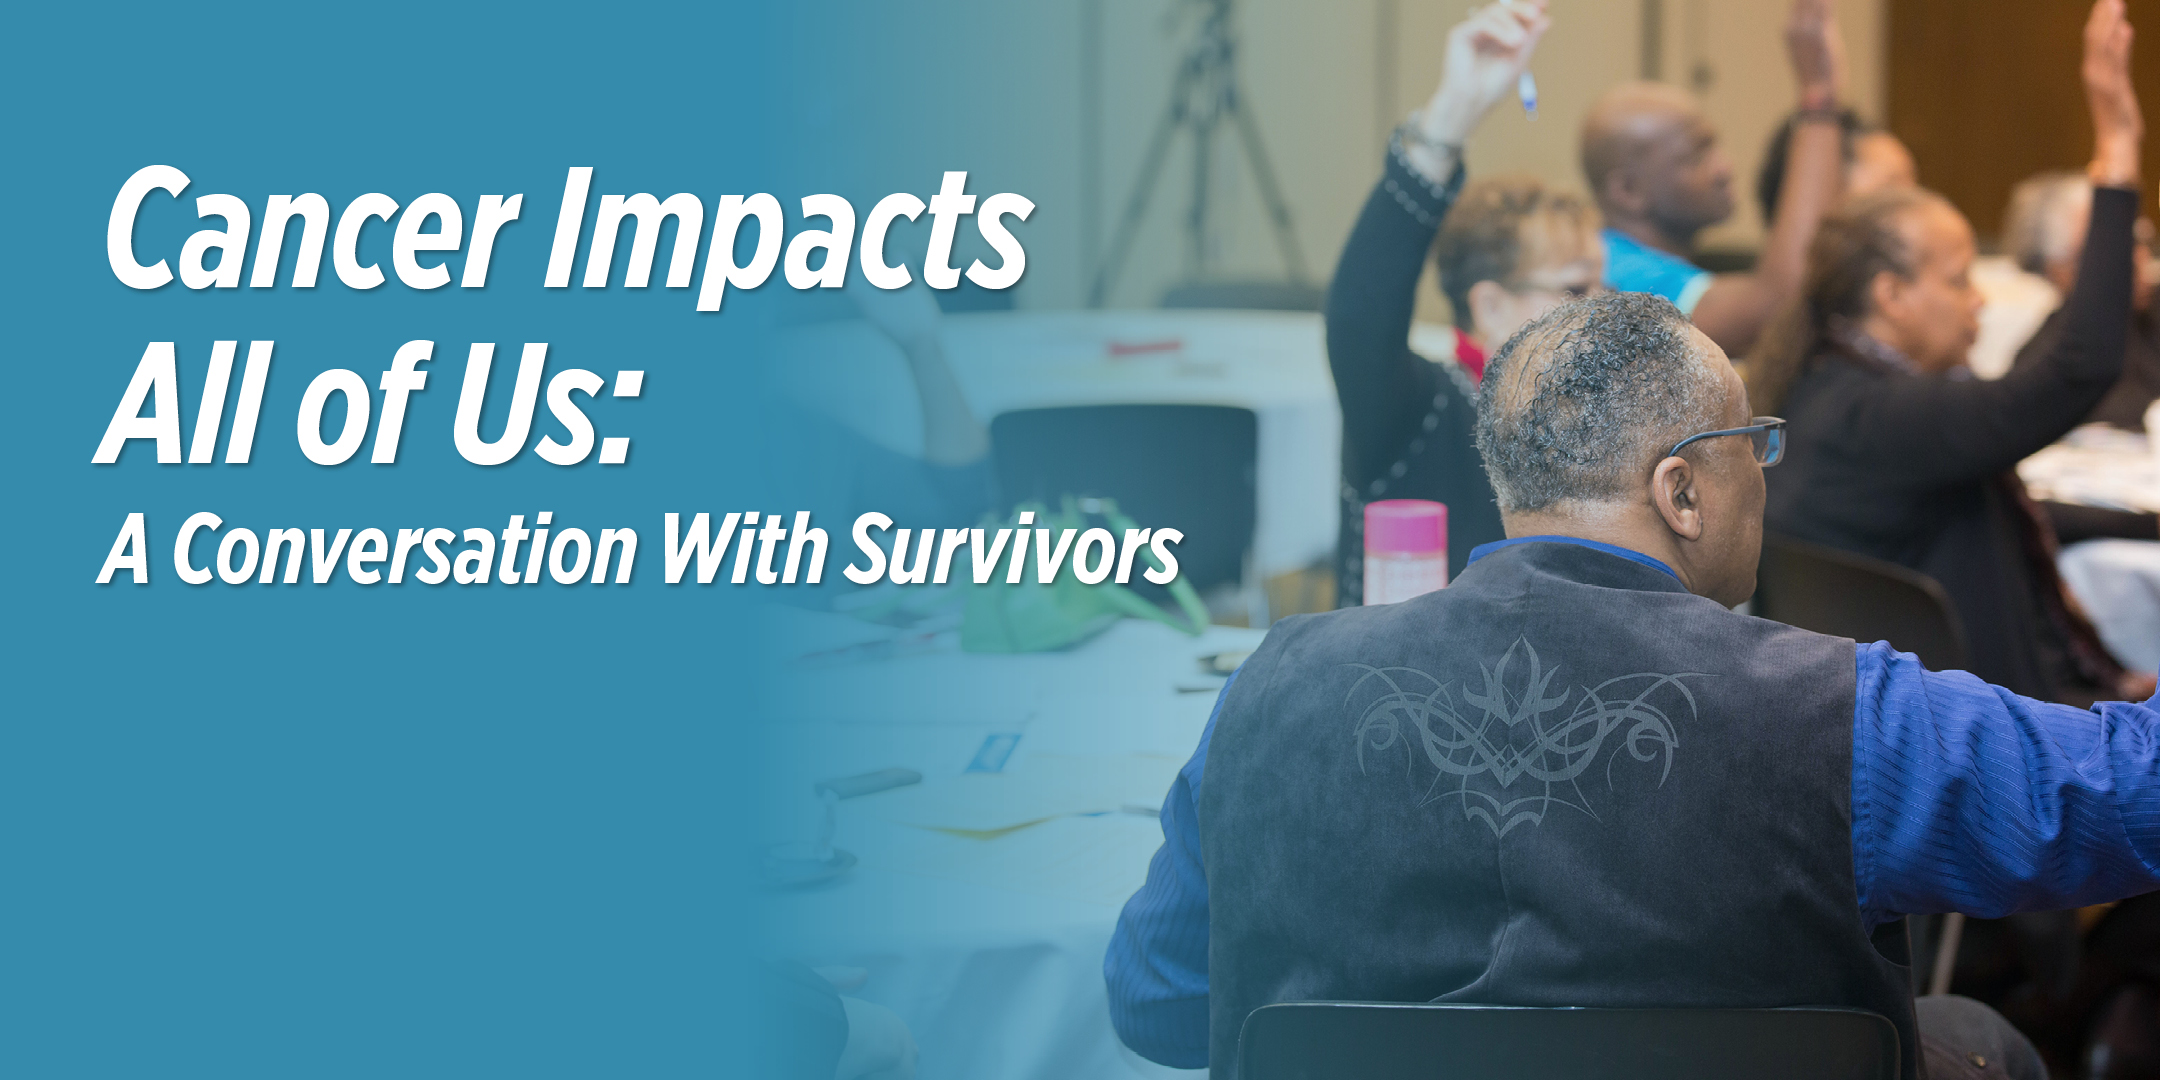 Cancer Impacts All of Us: A Conversation With Survivors.